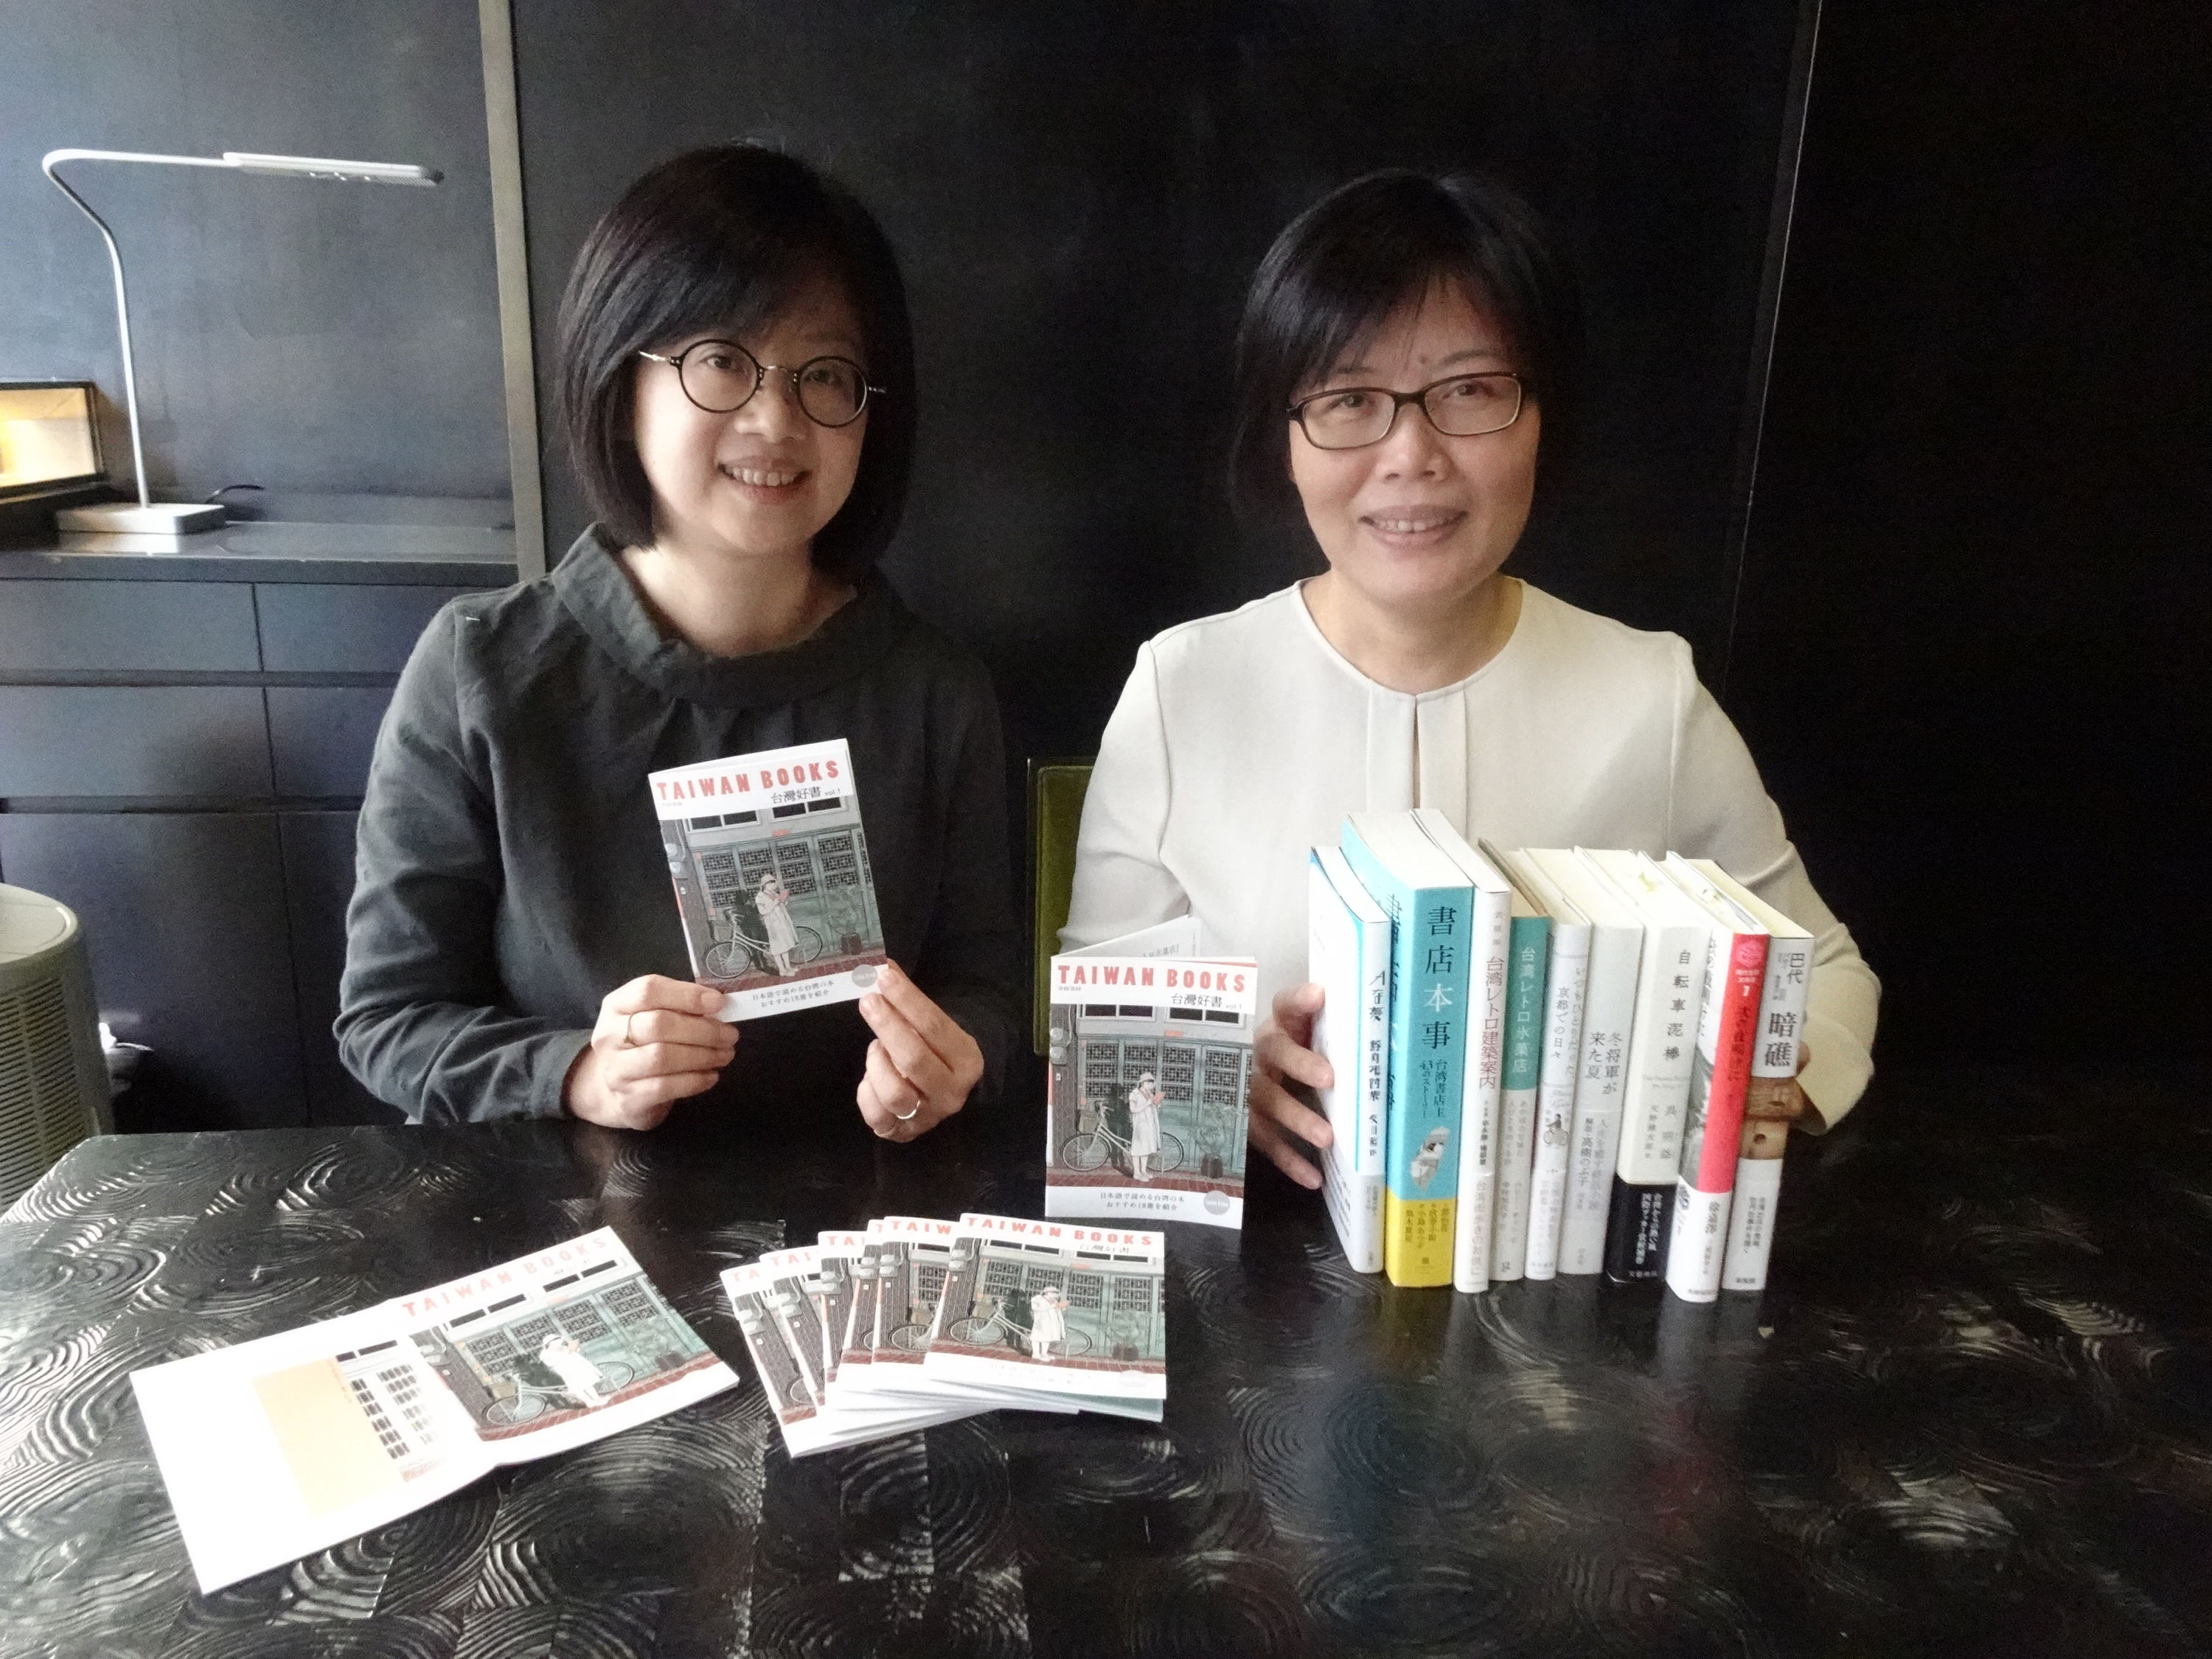 'TAIWAN BOOKS' booklet published to promote Taiwanese books in Japan